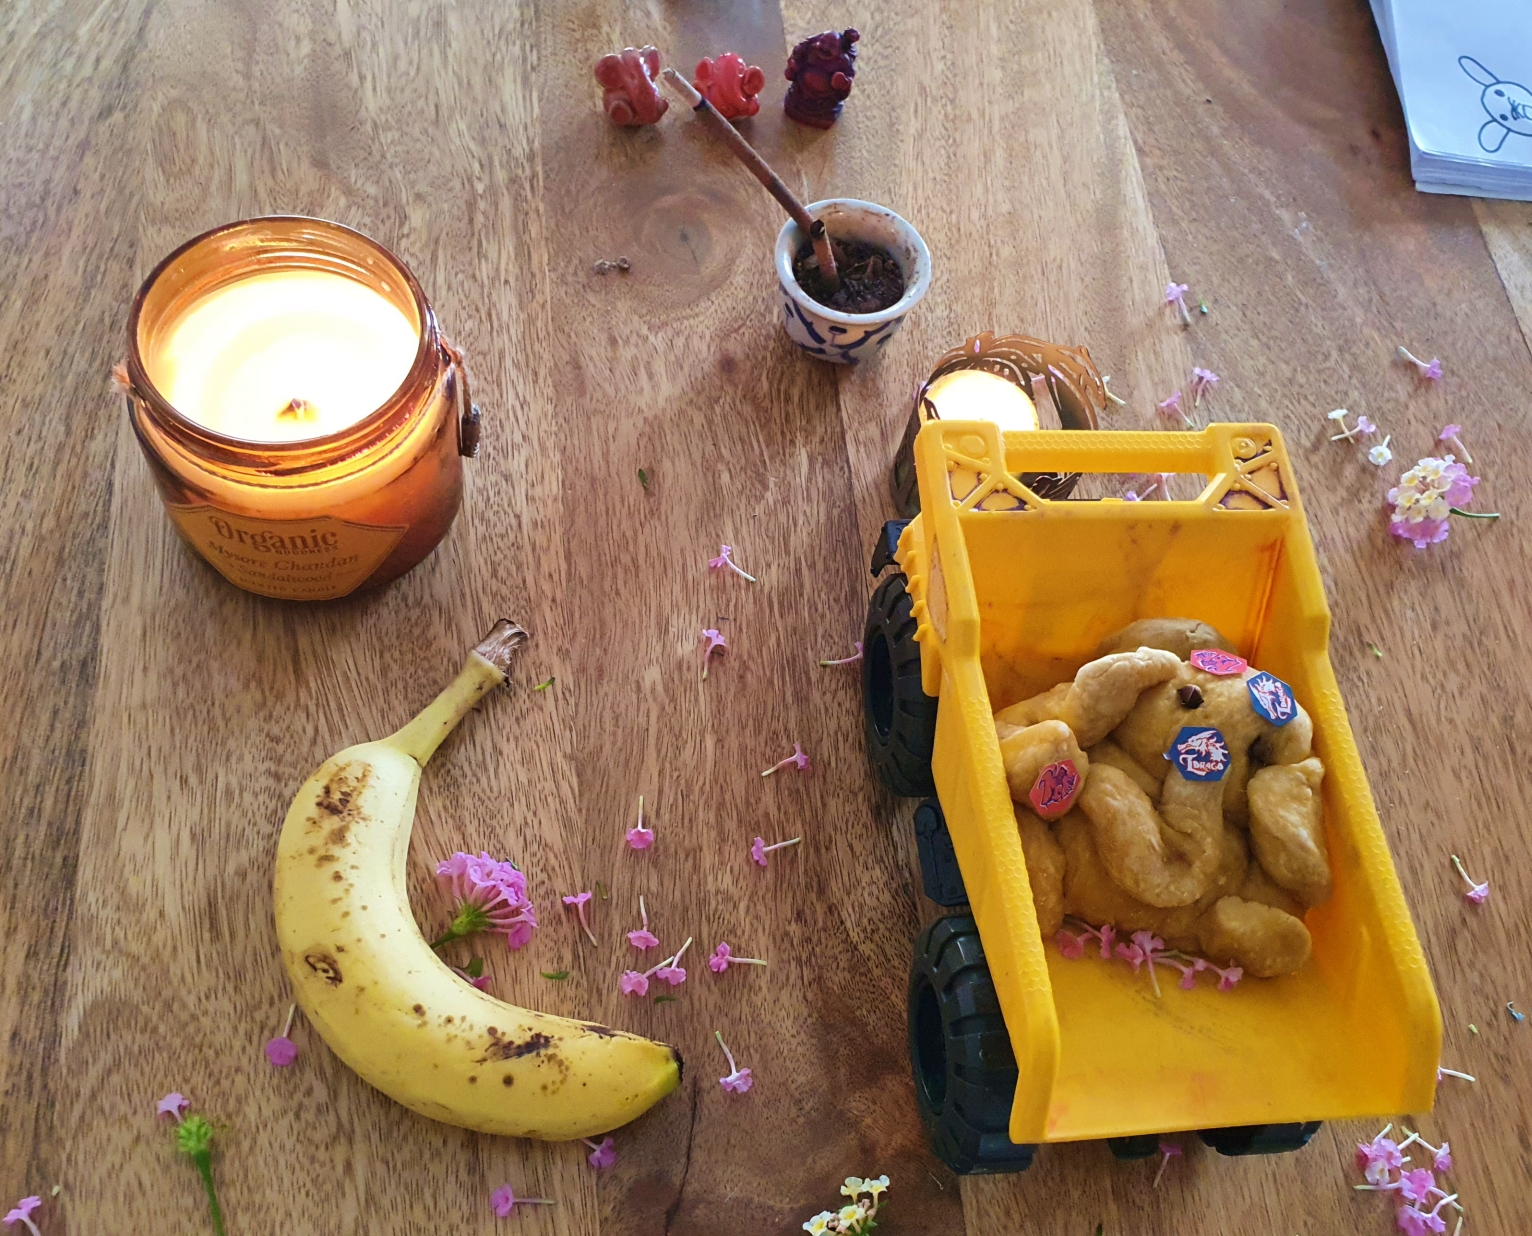 Eco friendly Ganesha mandap with flowers, candle, banana and homemade ganesha idol in a kid's toy truck